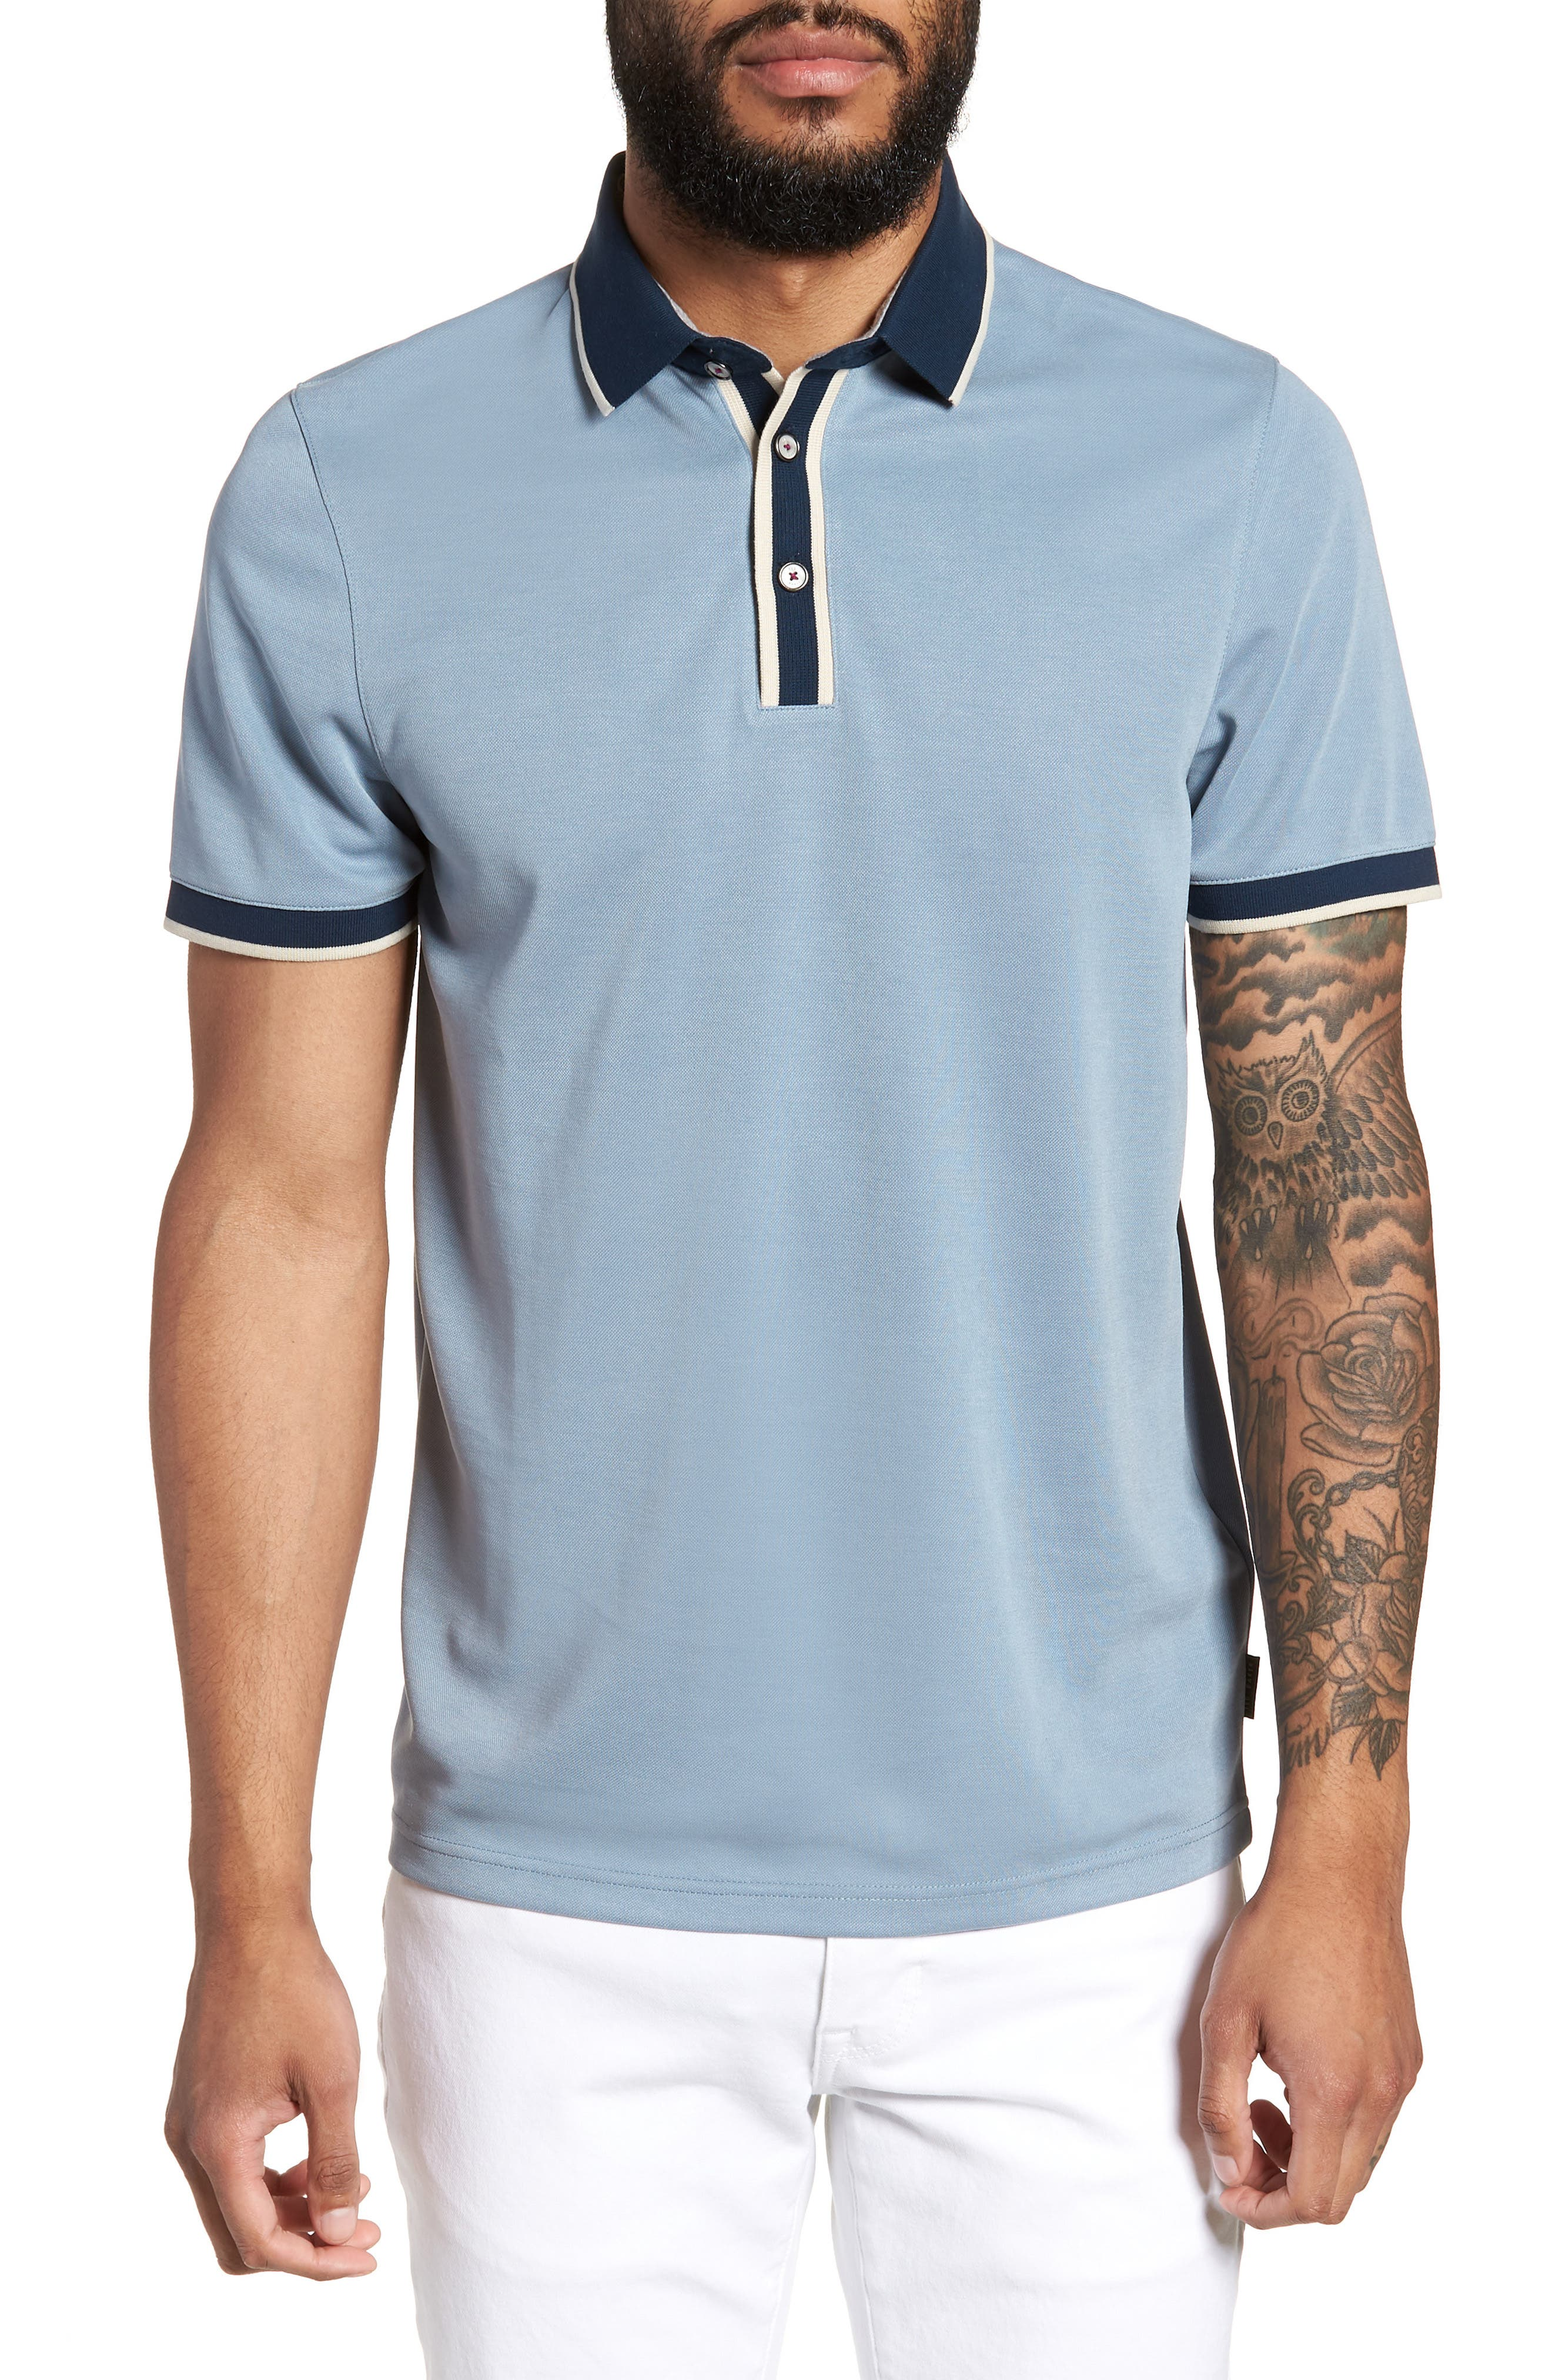 Main Image - Ted Baker London Howl Trim Fit Polo Shirt